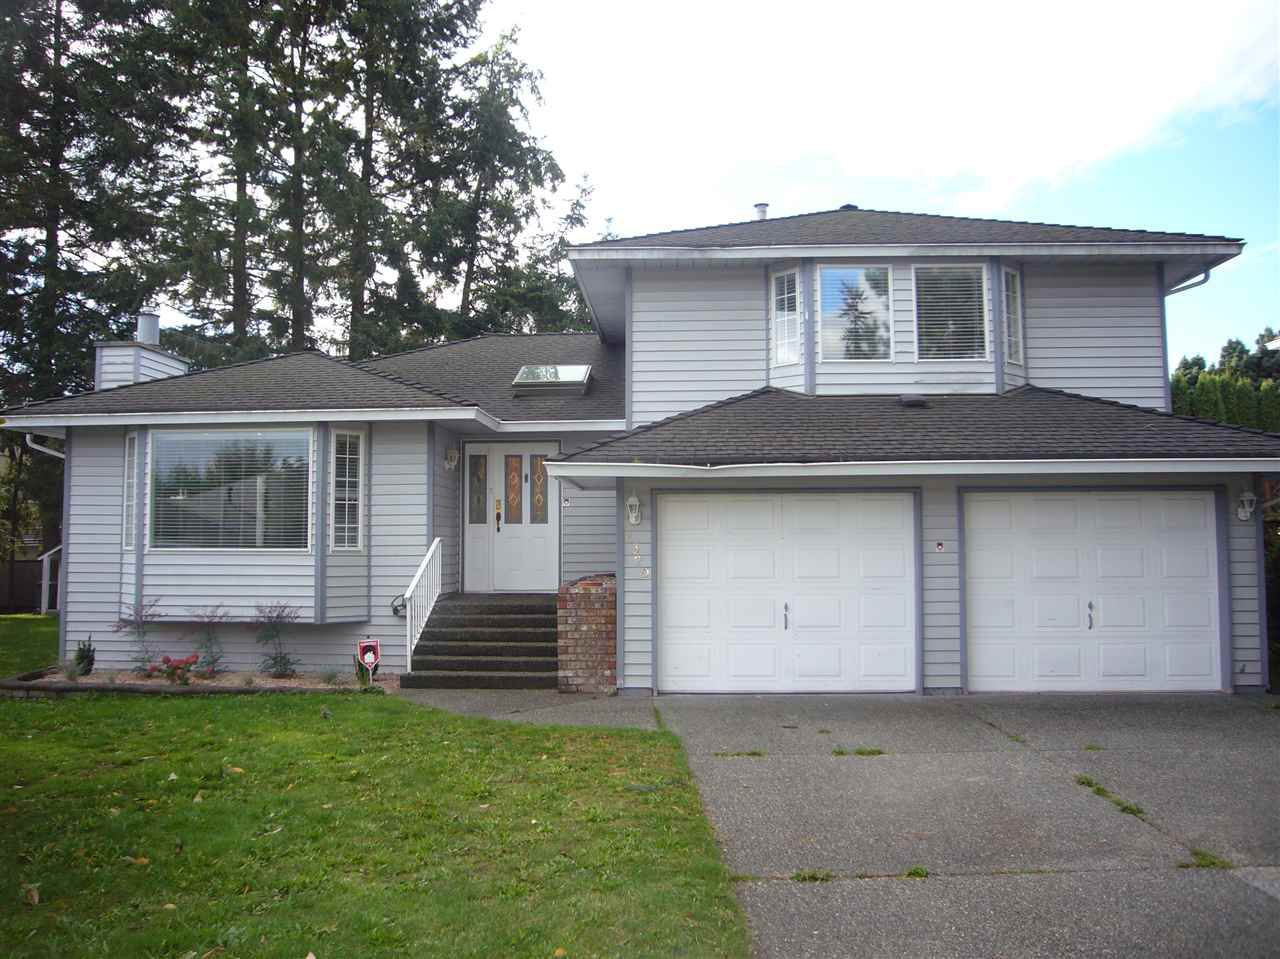 Main Photo: 2320 151A Street in Surrey: Sunnyside Park Surrey House for sale (South Surrey White Rock)  : MLS®# R2311116